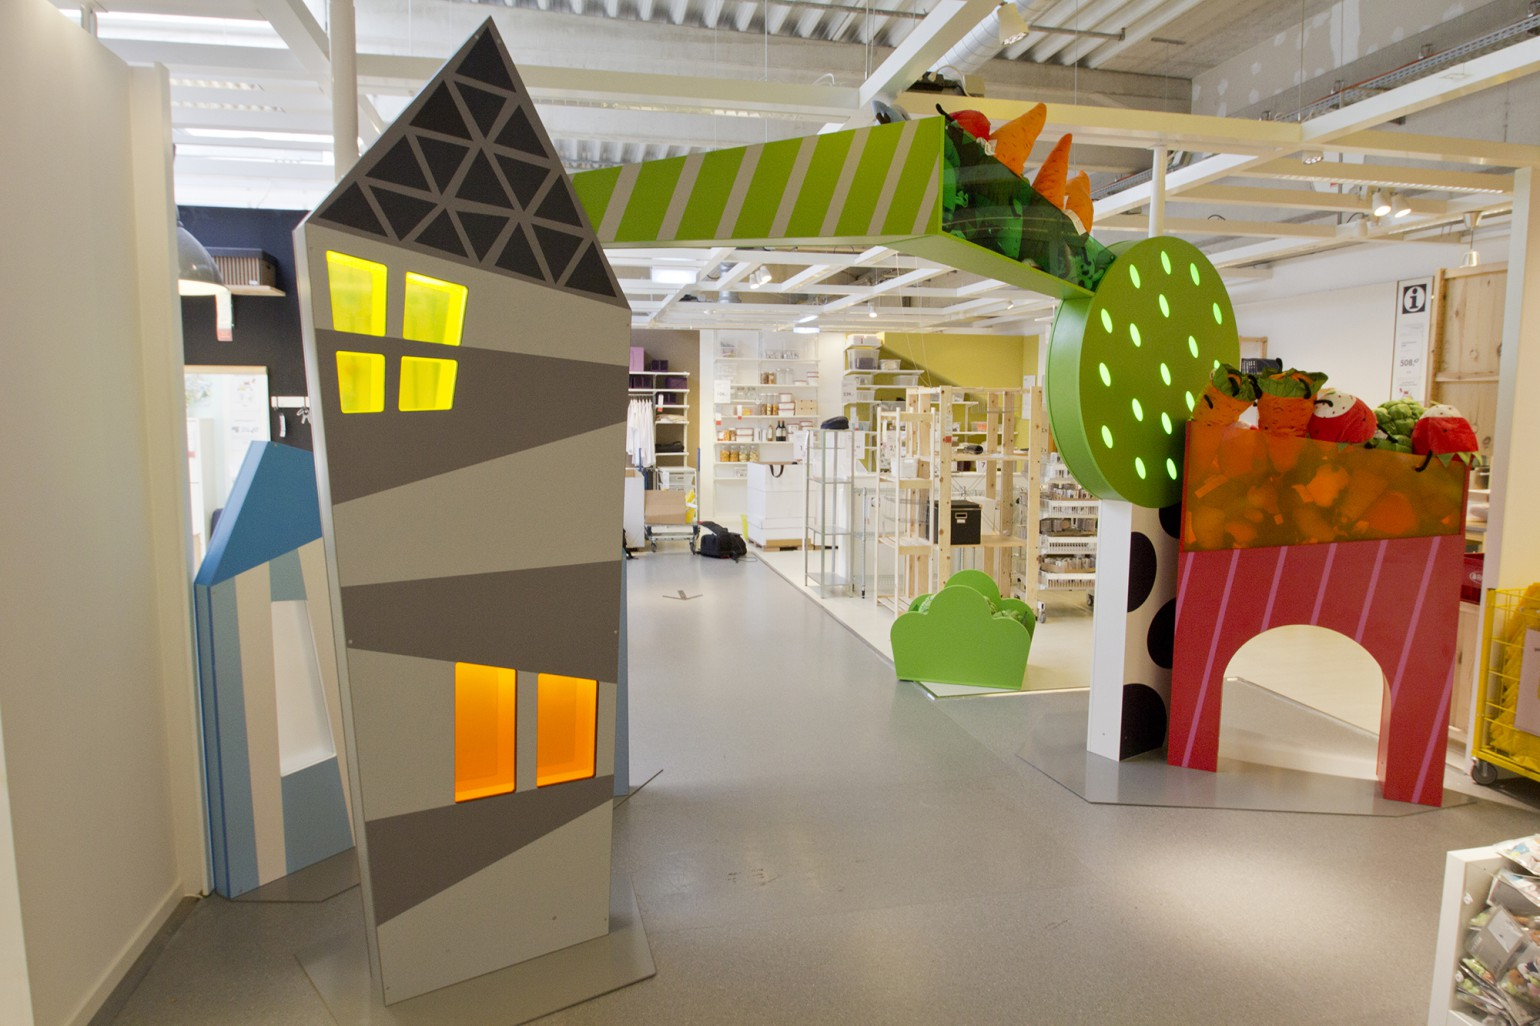 Childrens_IKEA_entrance_3.jpg